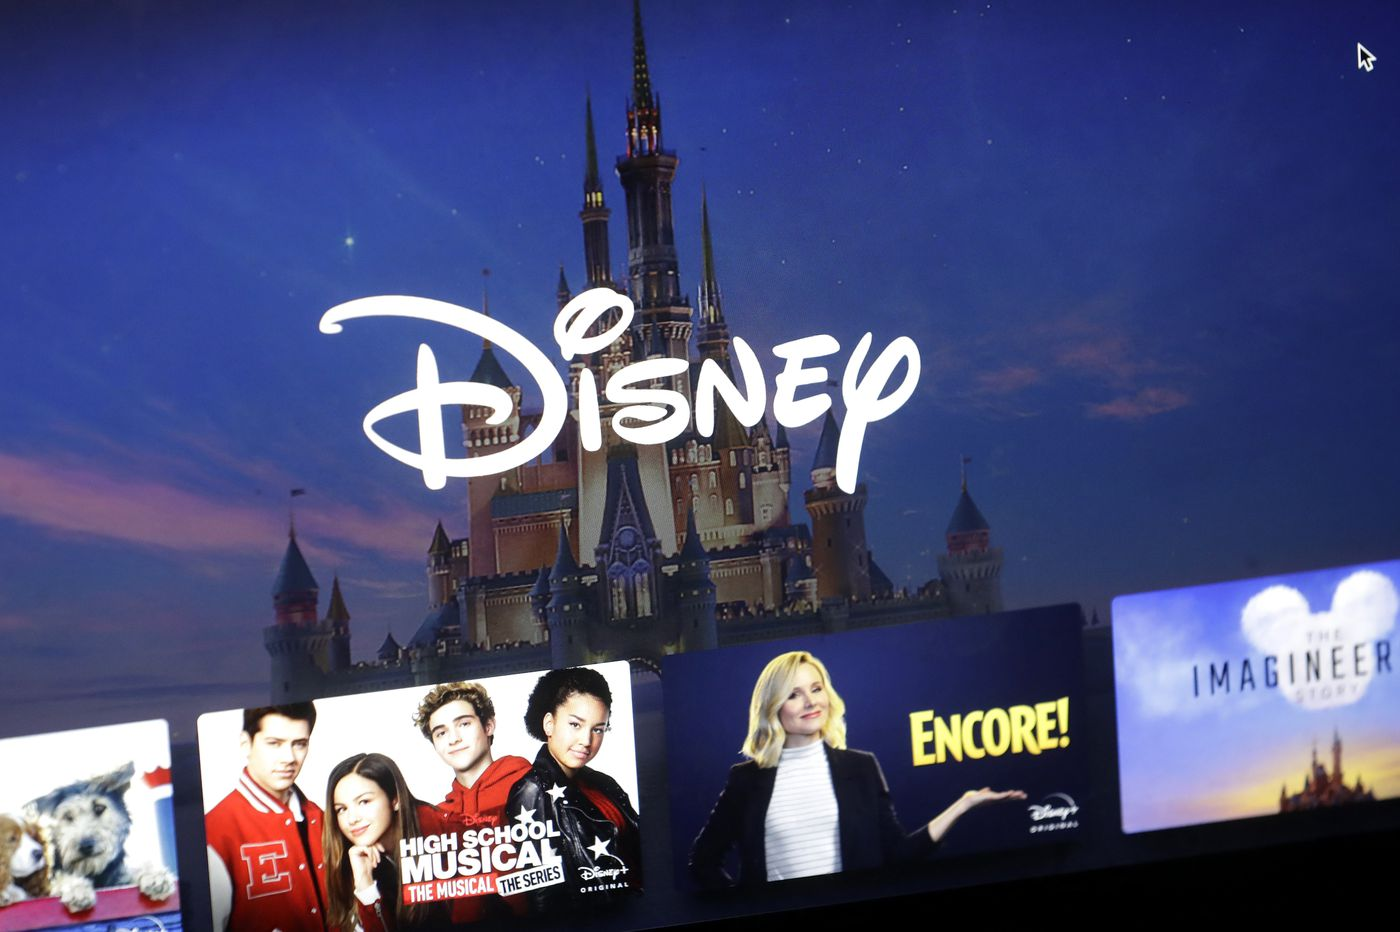 Disney+ ruins classics with new trigger warnings | Christine Flowers